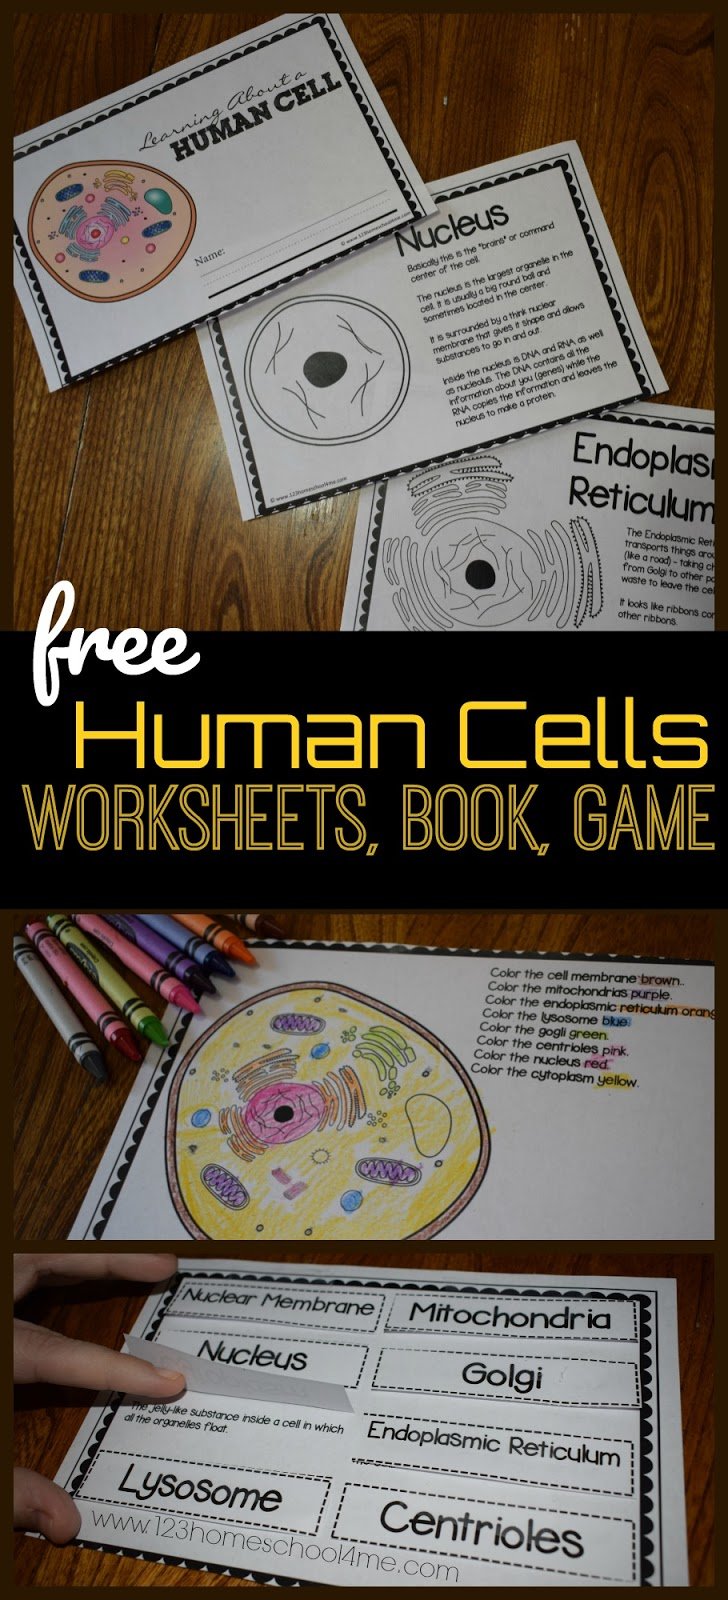 Human Cells (with free printables)